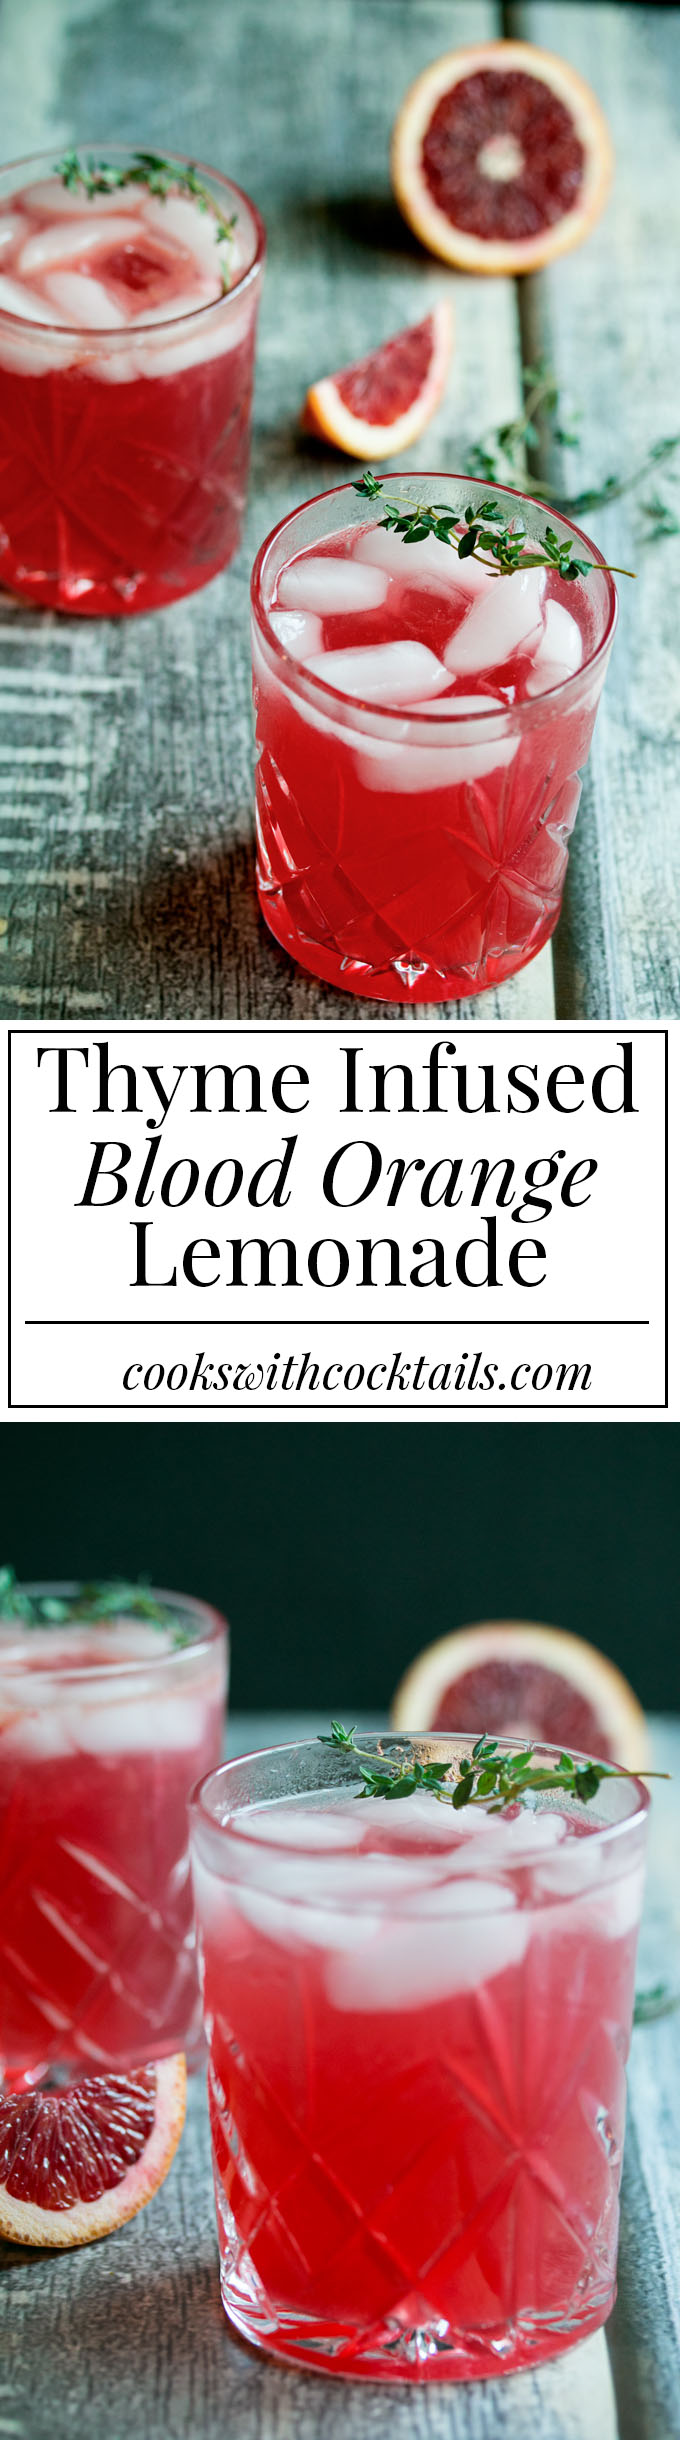 Hard Thyme Infused Blood Orange Lemonade